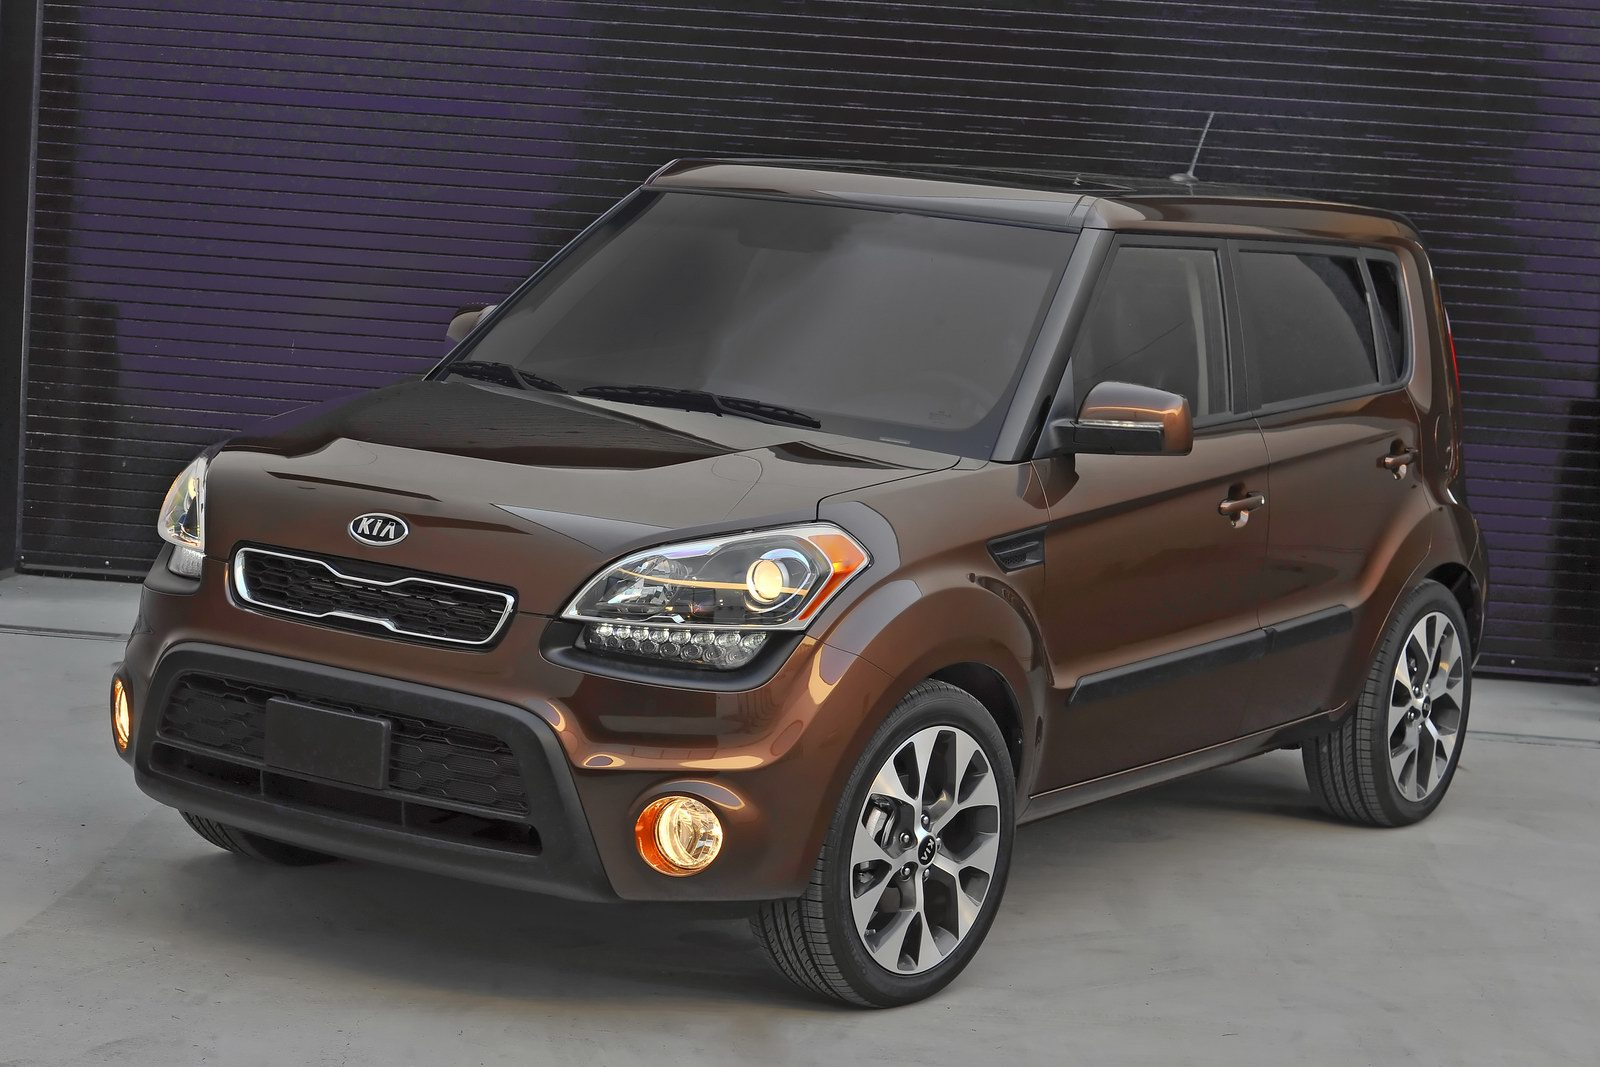 2012 Kia Soul 3 FACELIFT 2012 KIA SOUL PRICED FROM $14,650